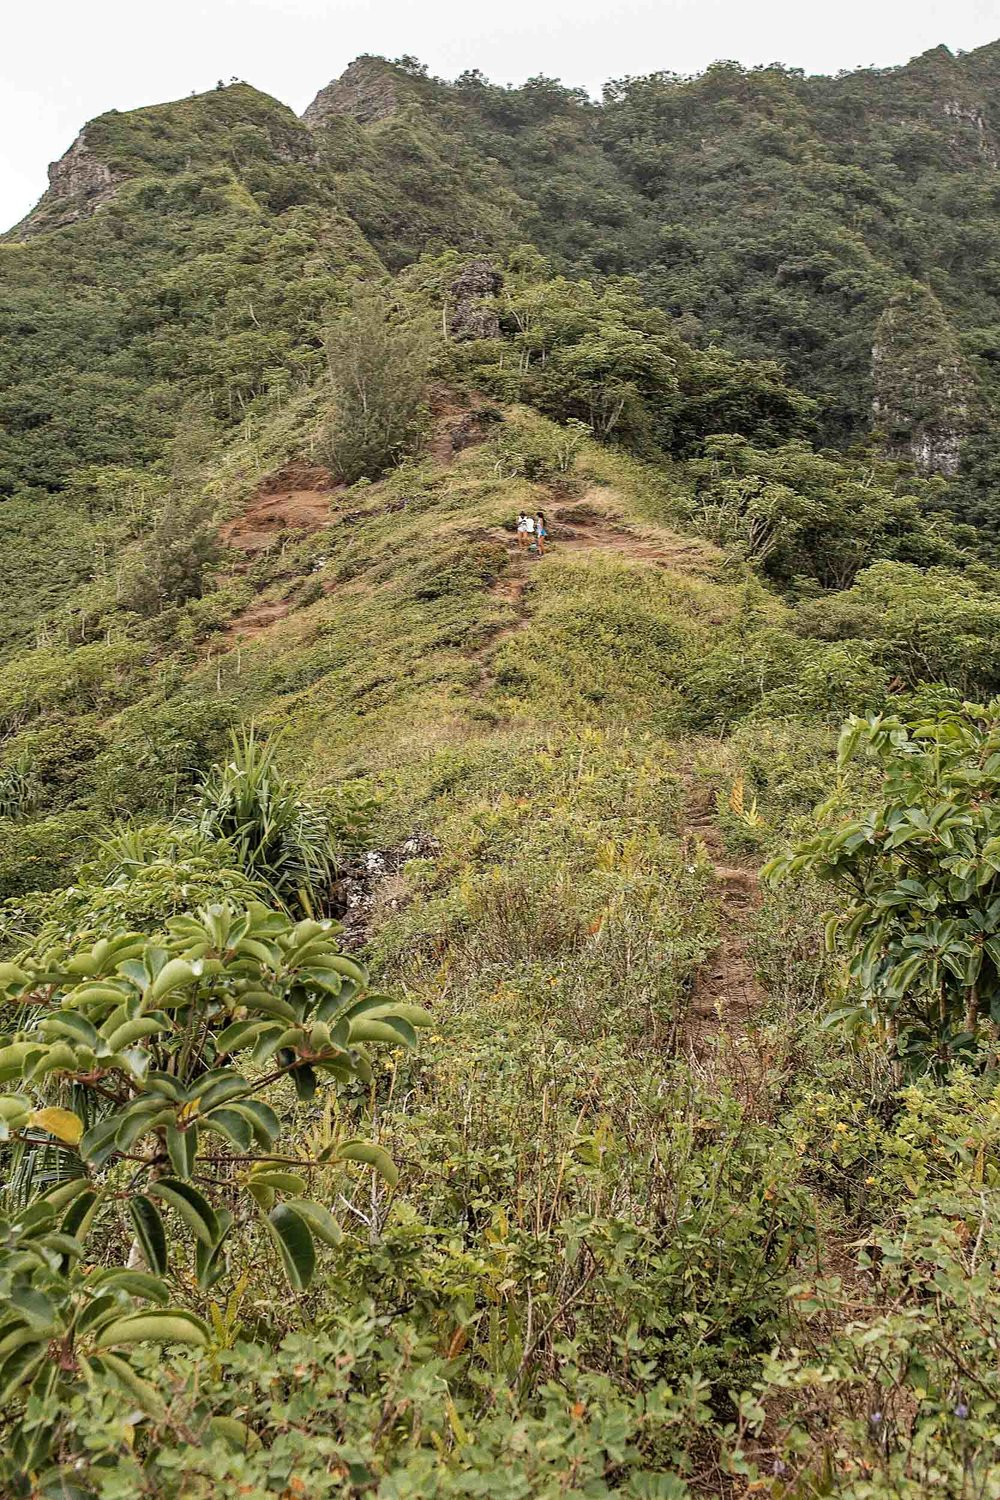 Steep inclines during the Crouching Lion Hike